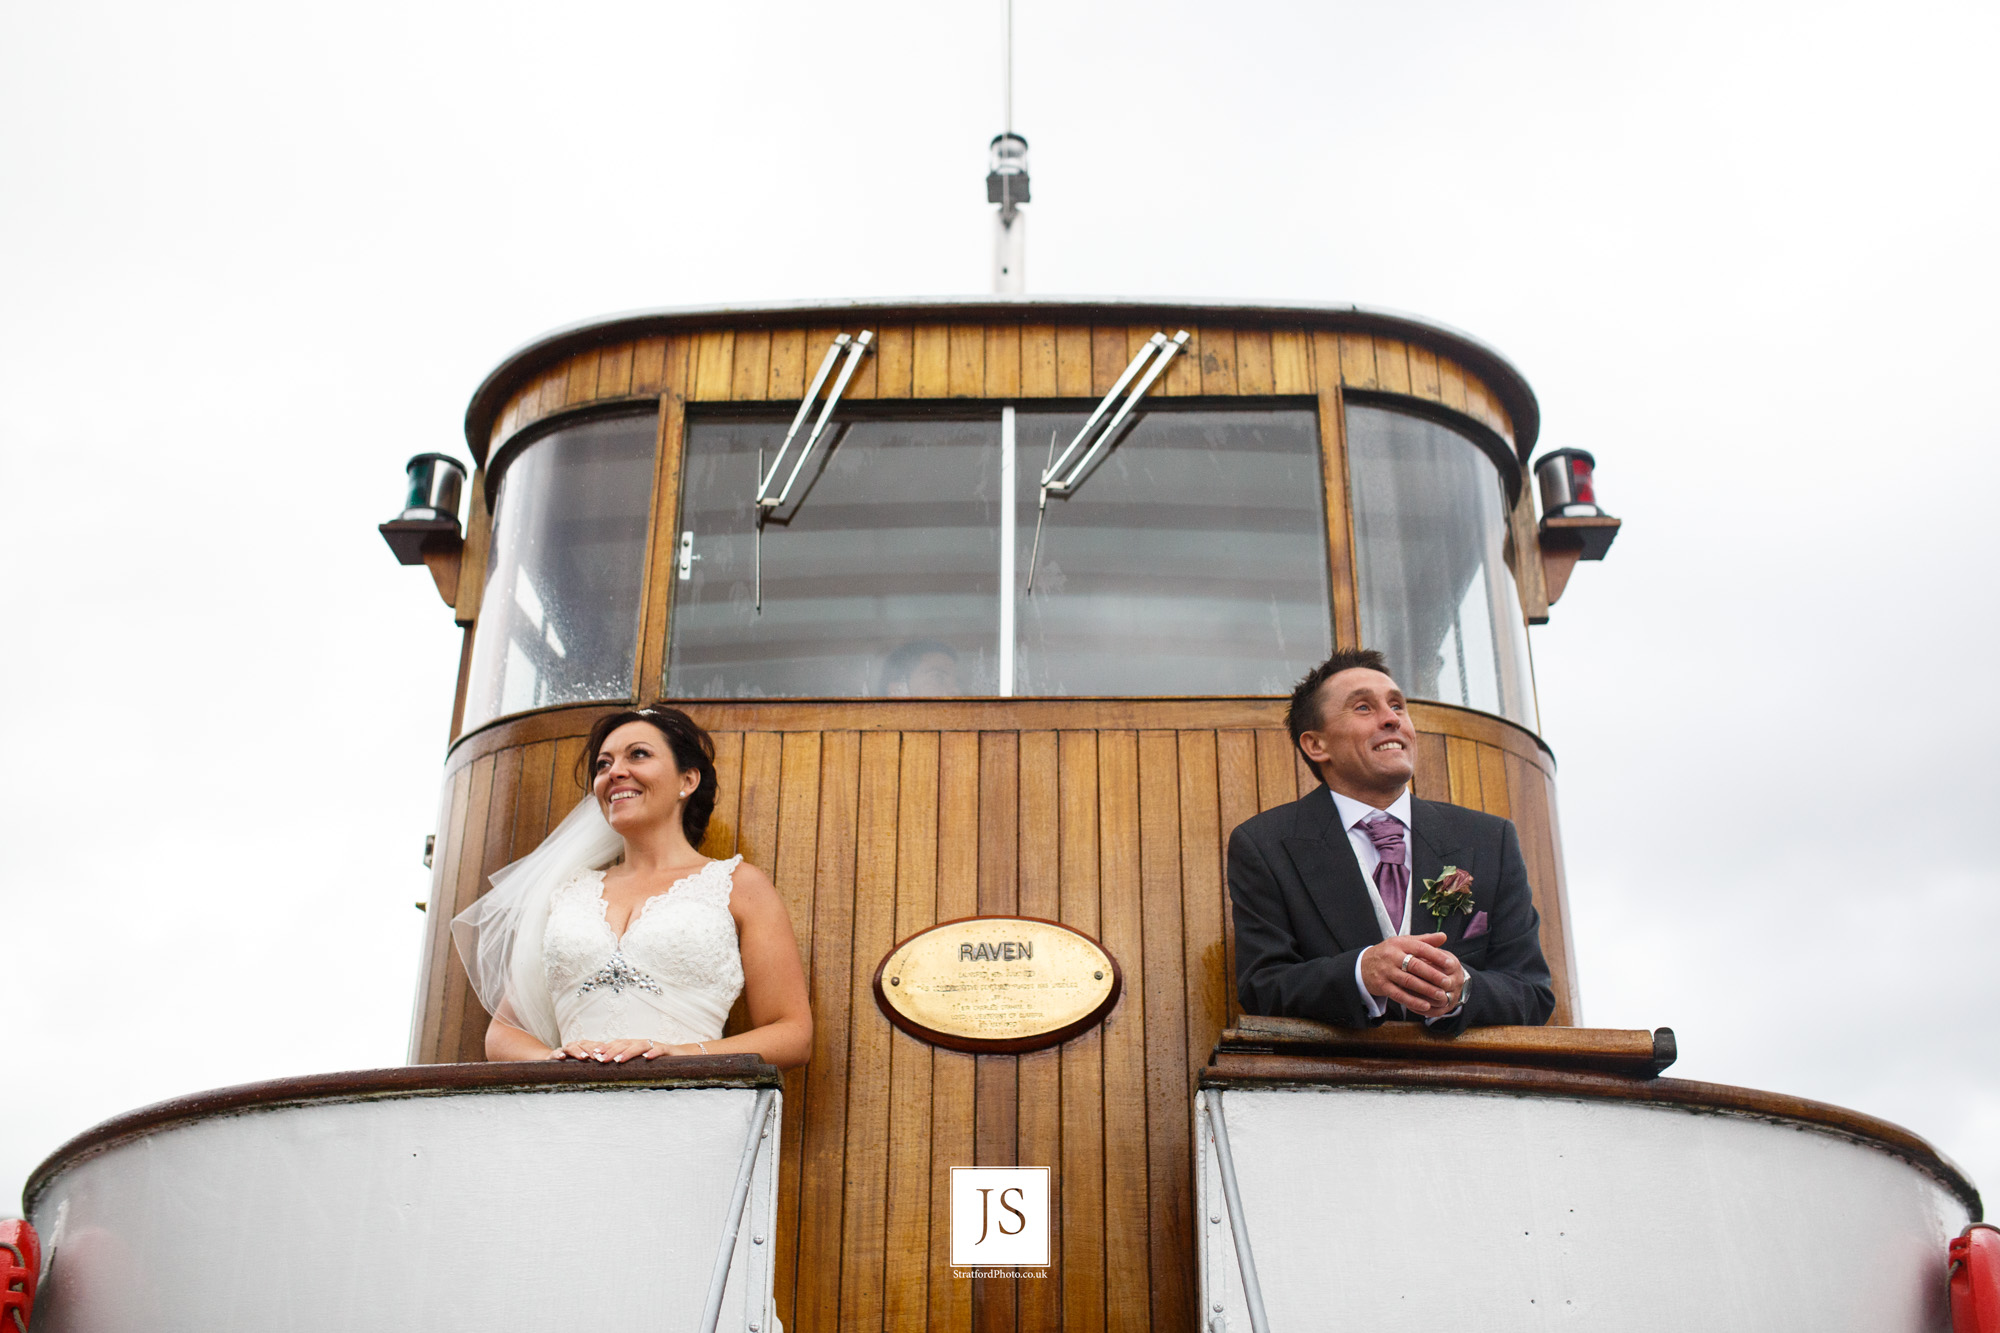 A bride and groom look out from the bridge of a Lake Ullswater steamer boat.jpg